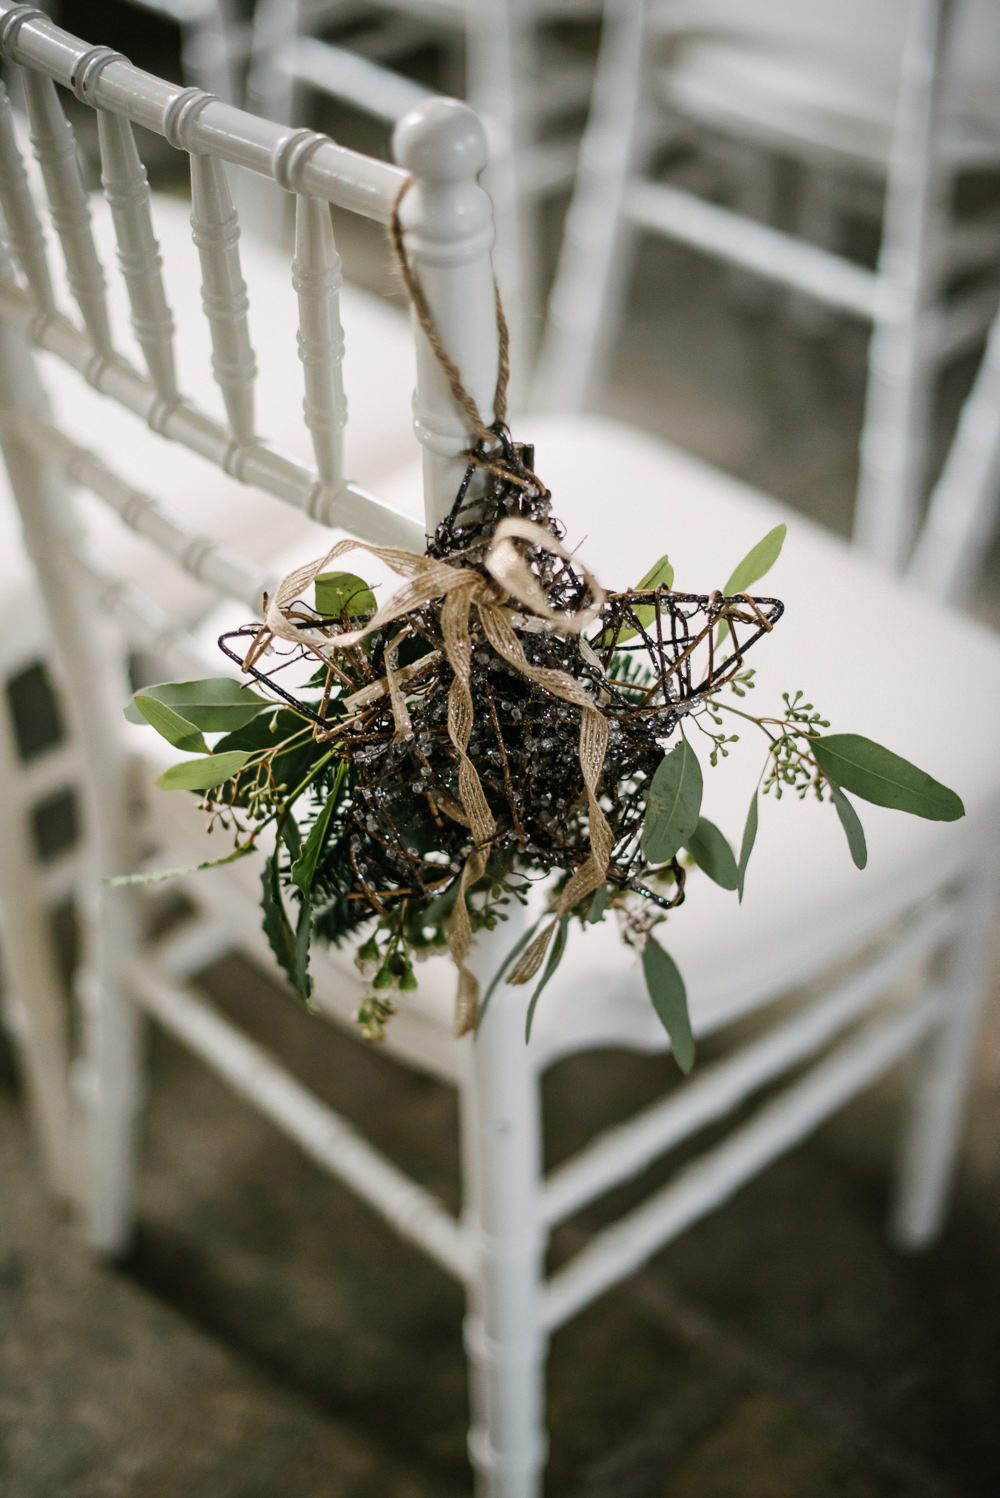 Aisle Pew End Raffia Hanging Foliage Orange Tree House Wedding Winter You Them Us Photography